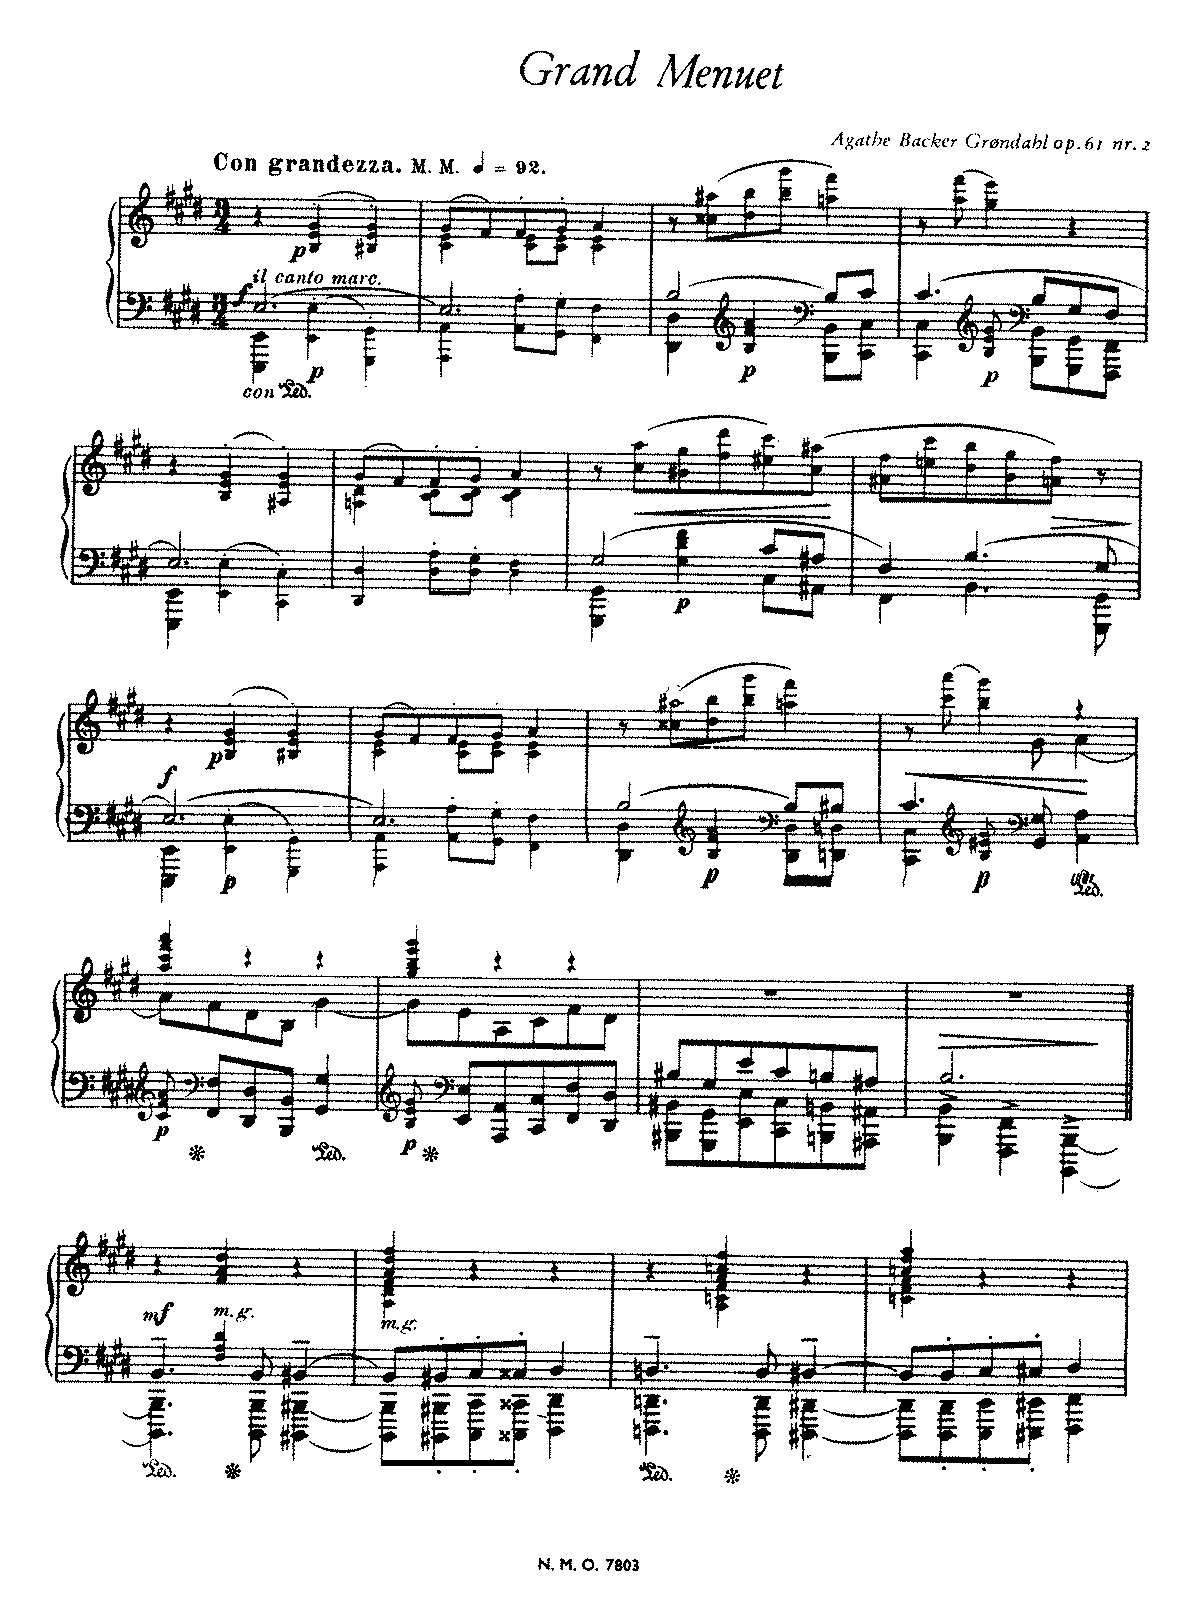 Backer-Grondahl - Op.61 No.2 - Grand Menuet.pdf